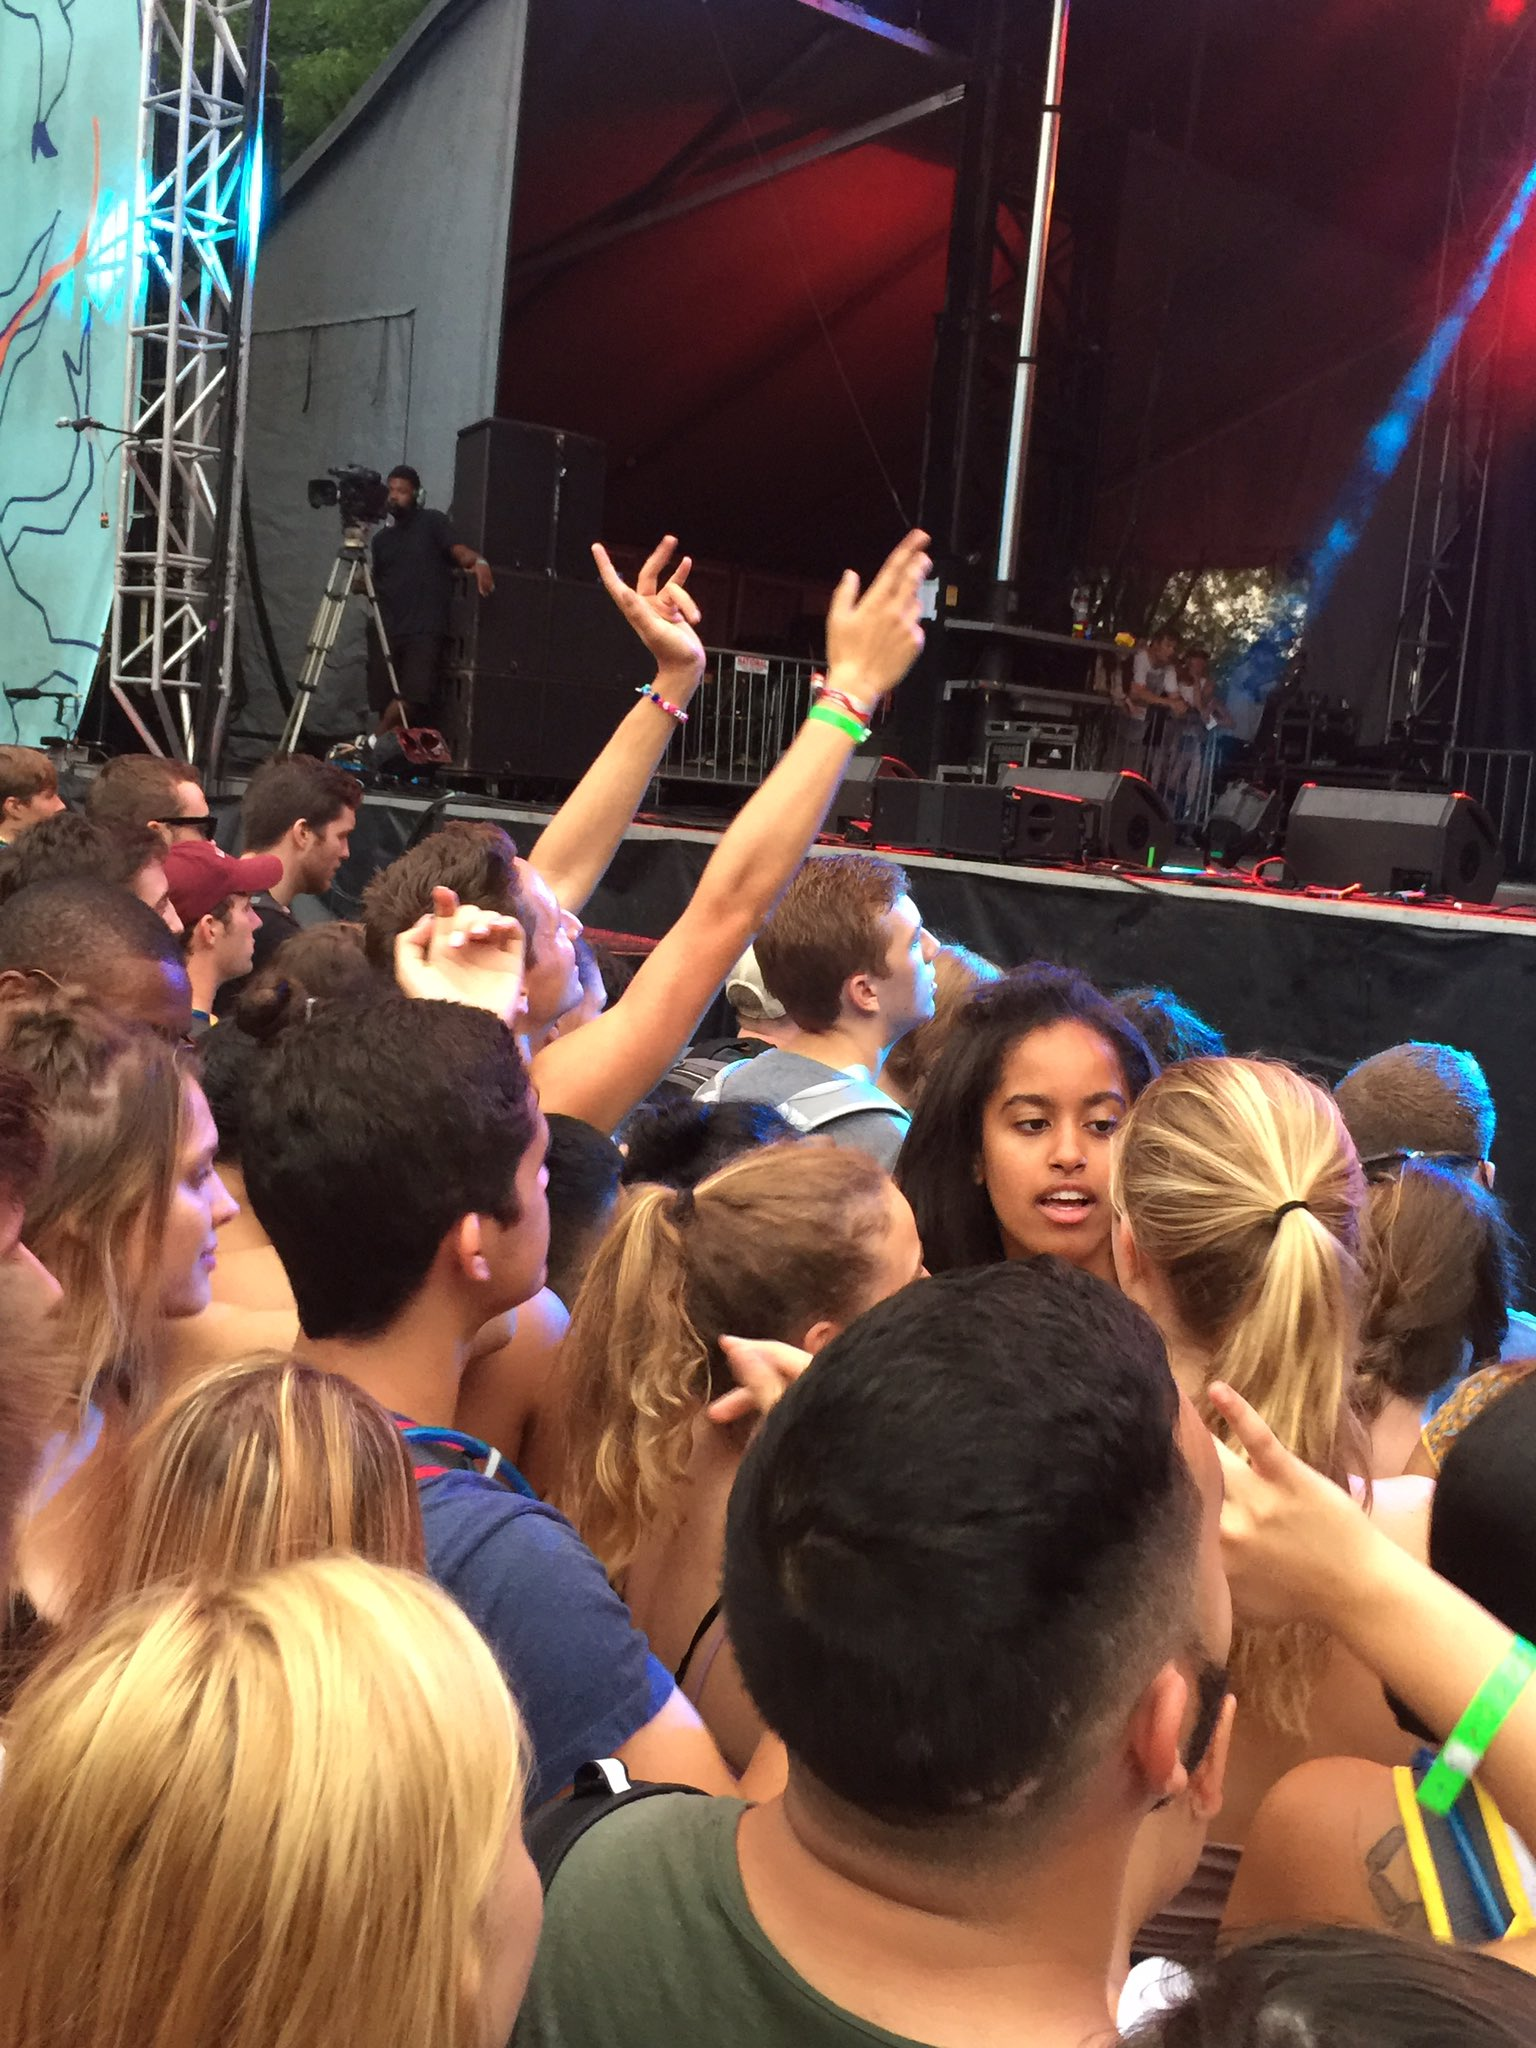 Malia Obama Lollapalooza Stage Dancing - Cashmere Cat, Max Miller Concert, Skips DNC